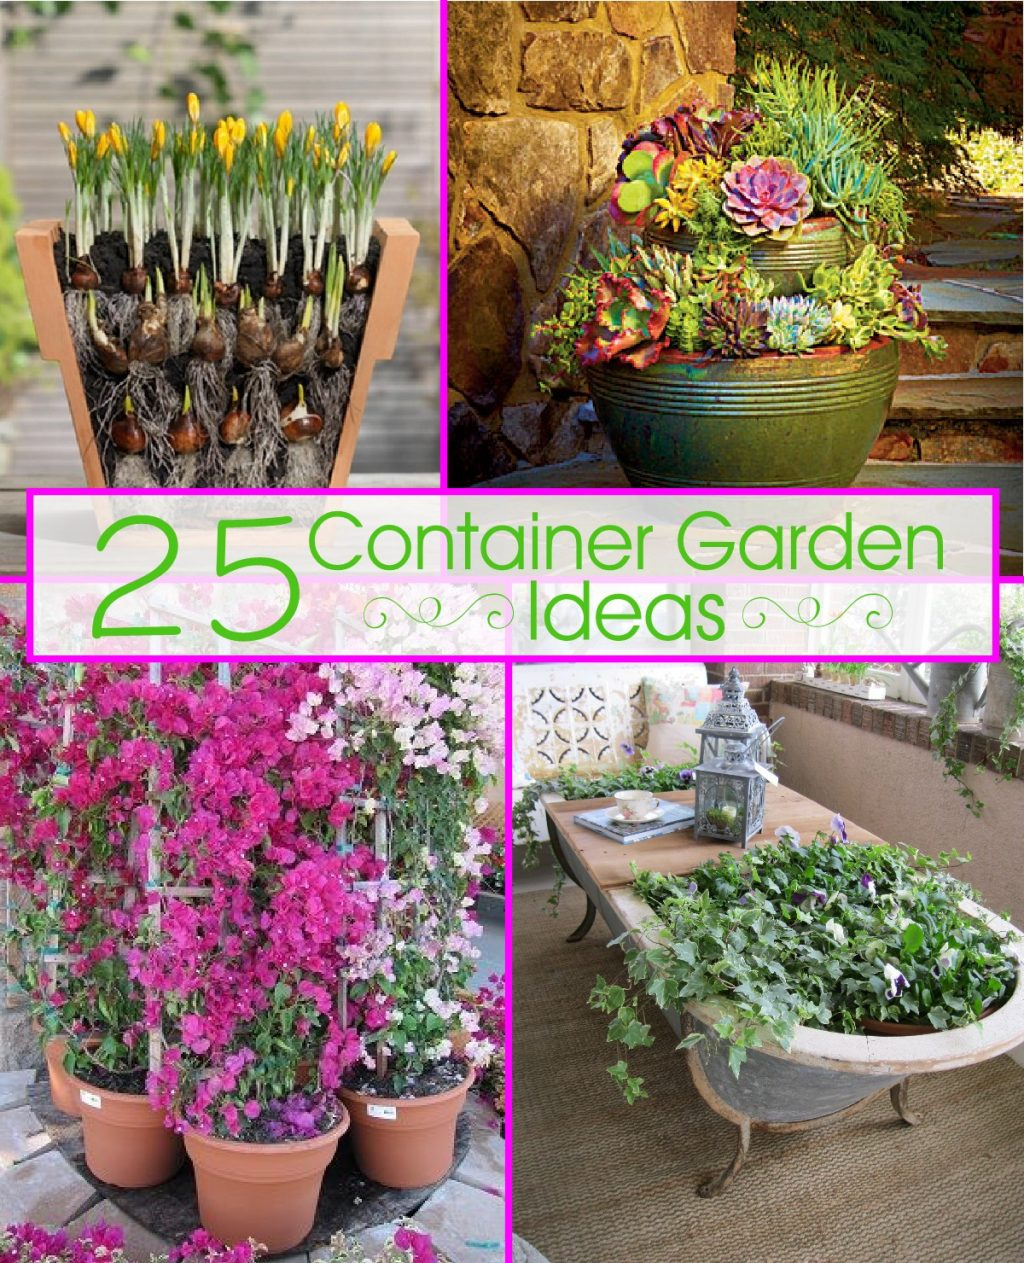 25 Container Garden Ideas The Scrap Shoppe